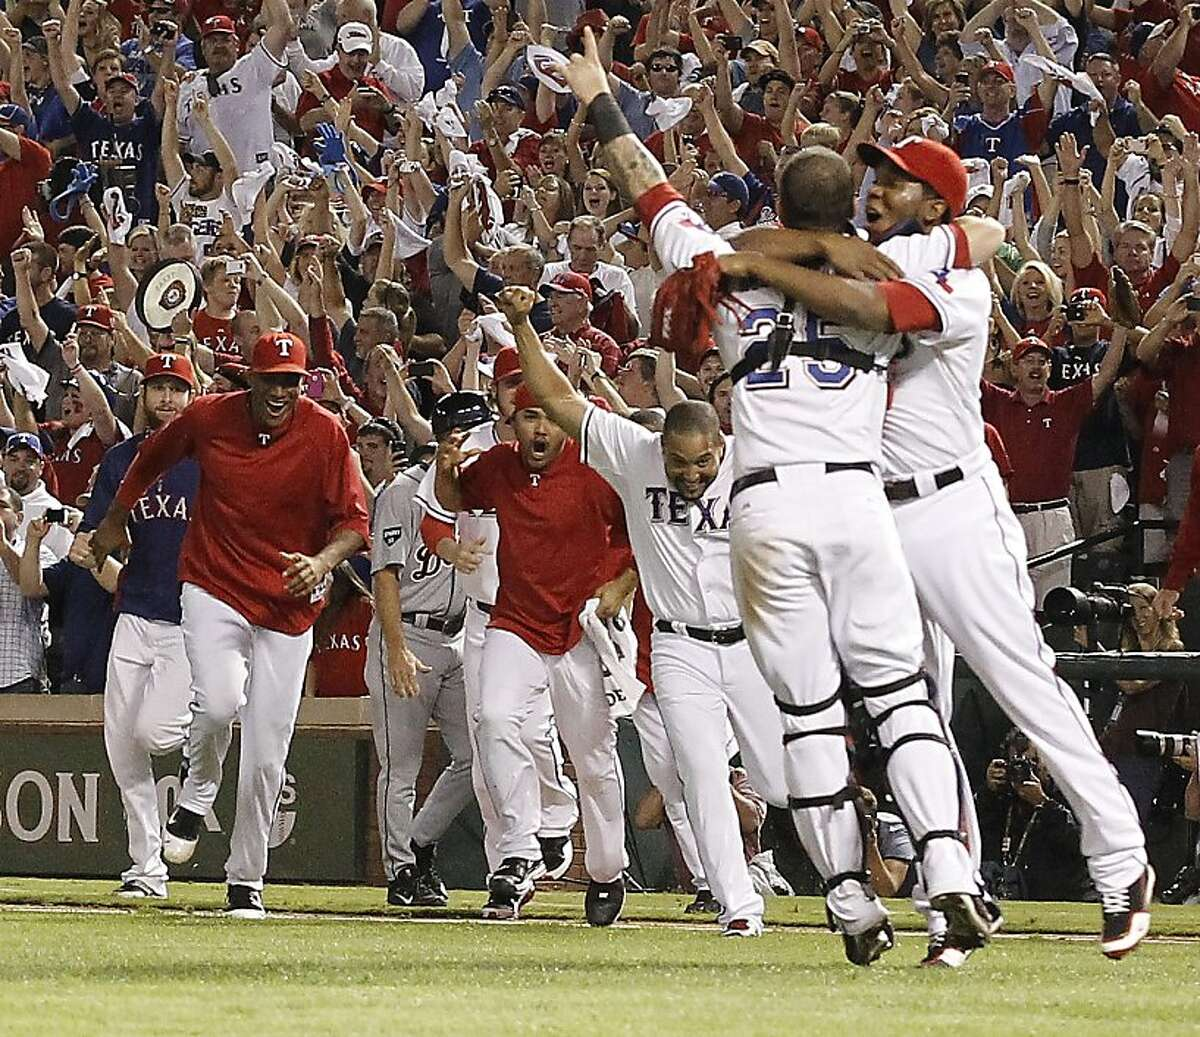 The Texas Rangers start the celebration after a convincing 15-5 win over the Detroit Tigers in Game 6 of the American League Championship Series in Arlington, Texas, Saturday, October 15, 2011. The triumph returns the Rangers to the World Series for the second year in a row. (Ron T. Ennis/Fort Worth Star-Telegram/MCT)